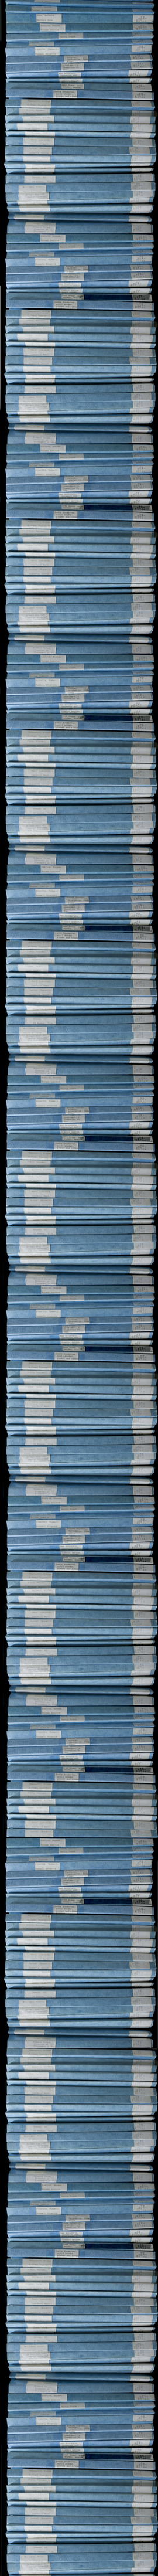 FIT oral histories in slim blue binders